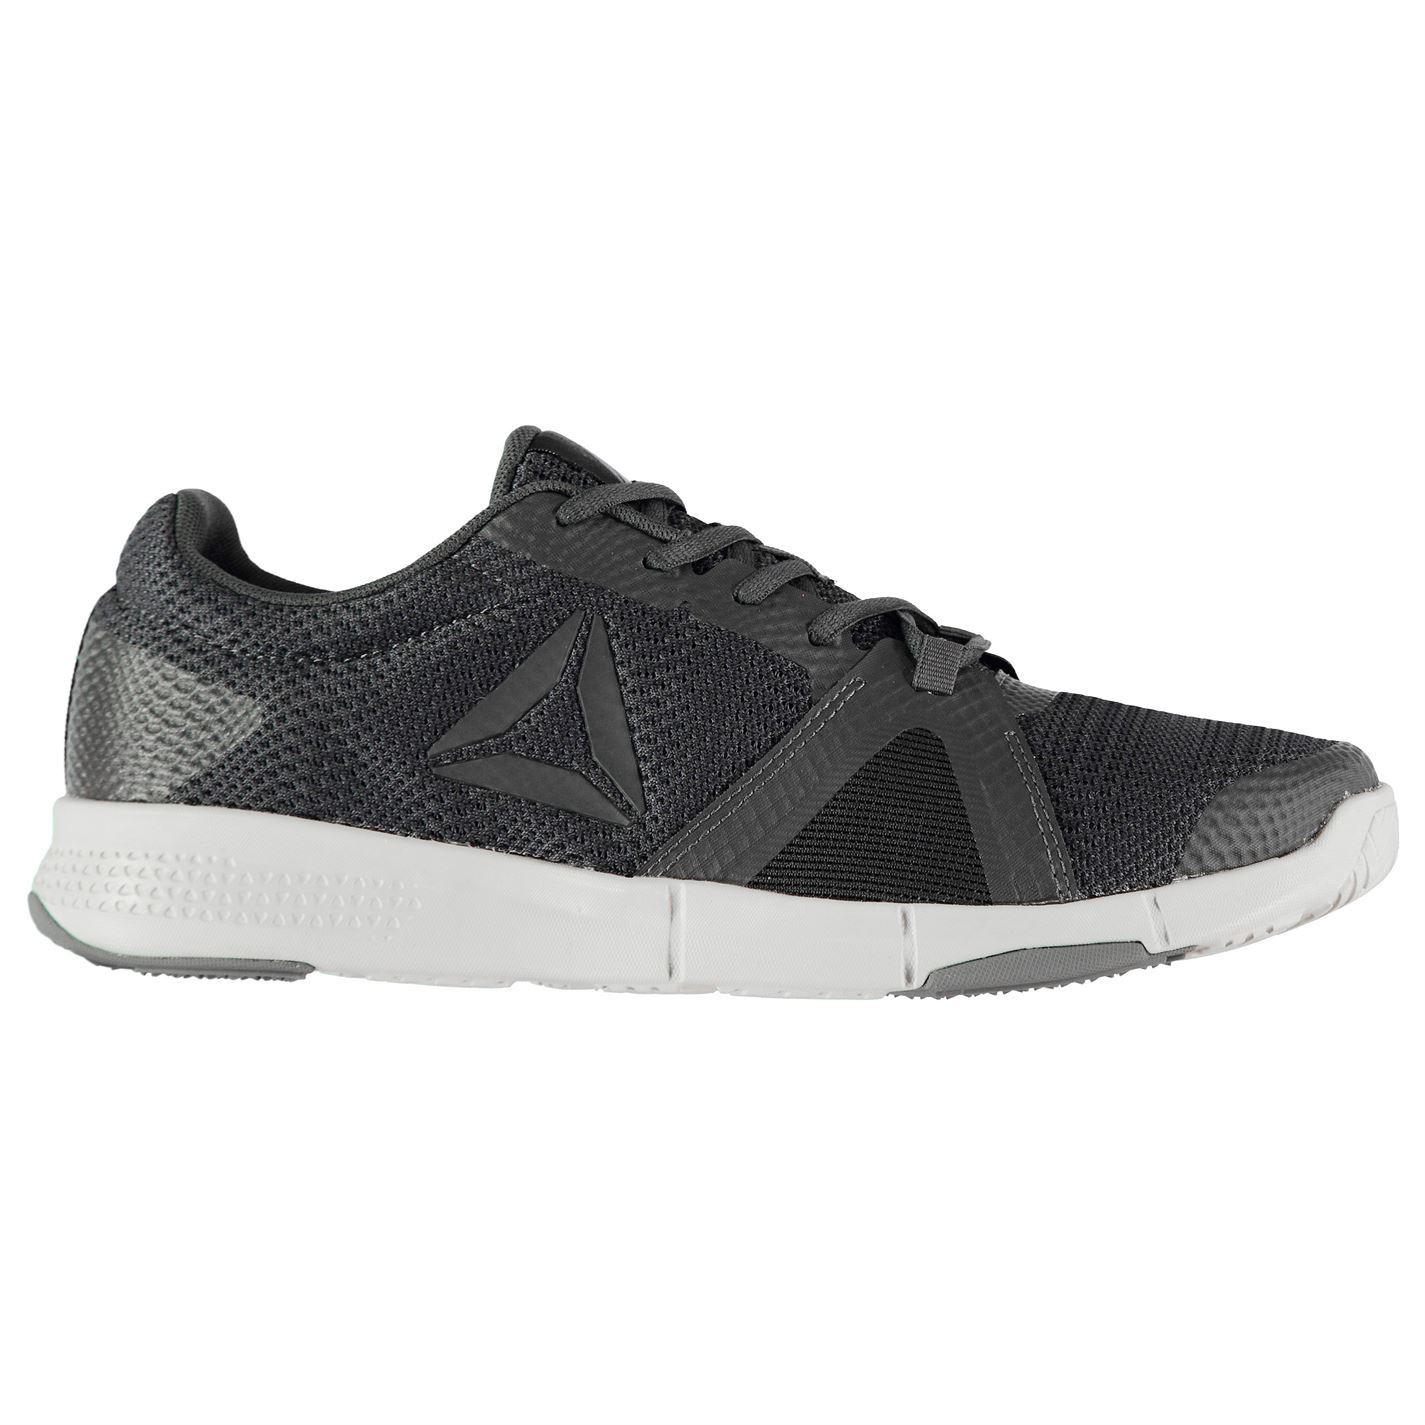 Activity Reebok Hombres Flexile Gents Trn Negro Shoes gris Sport wZZXpTrq